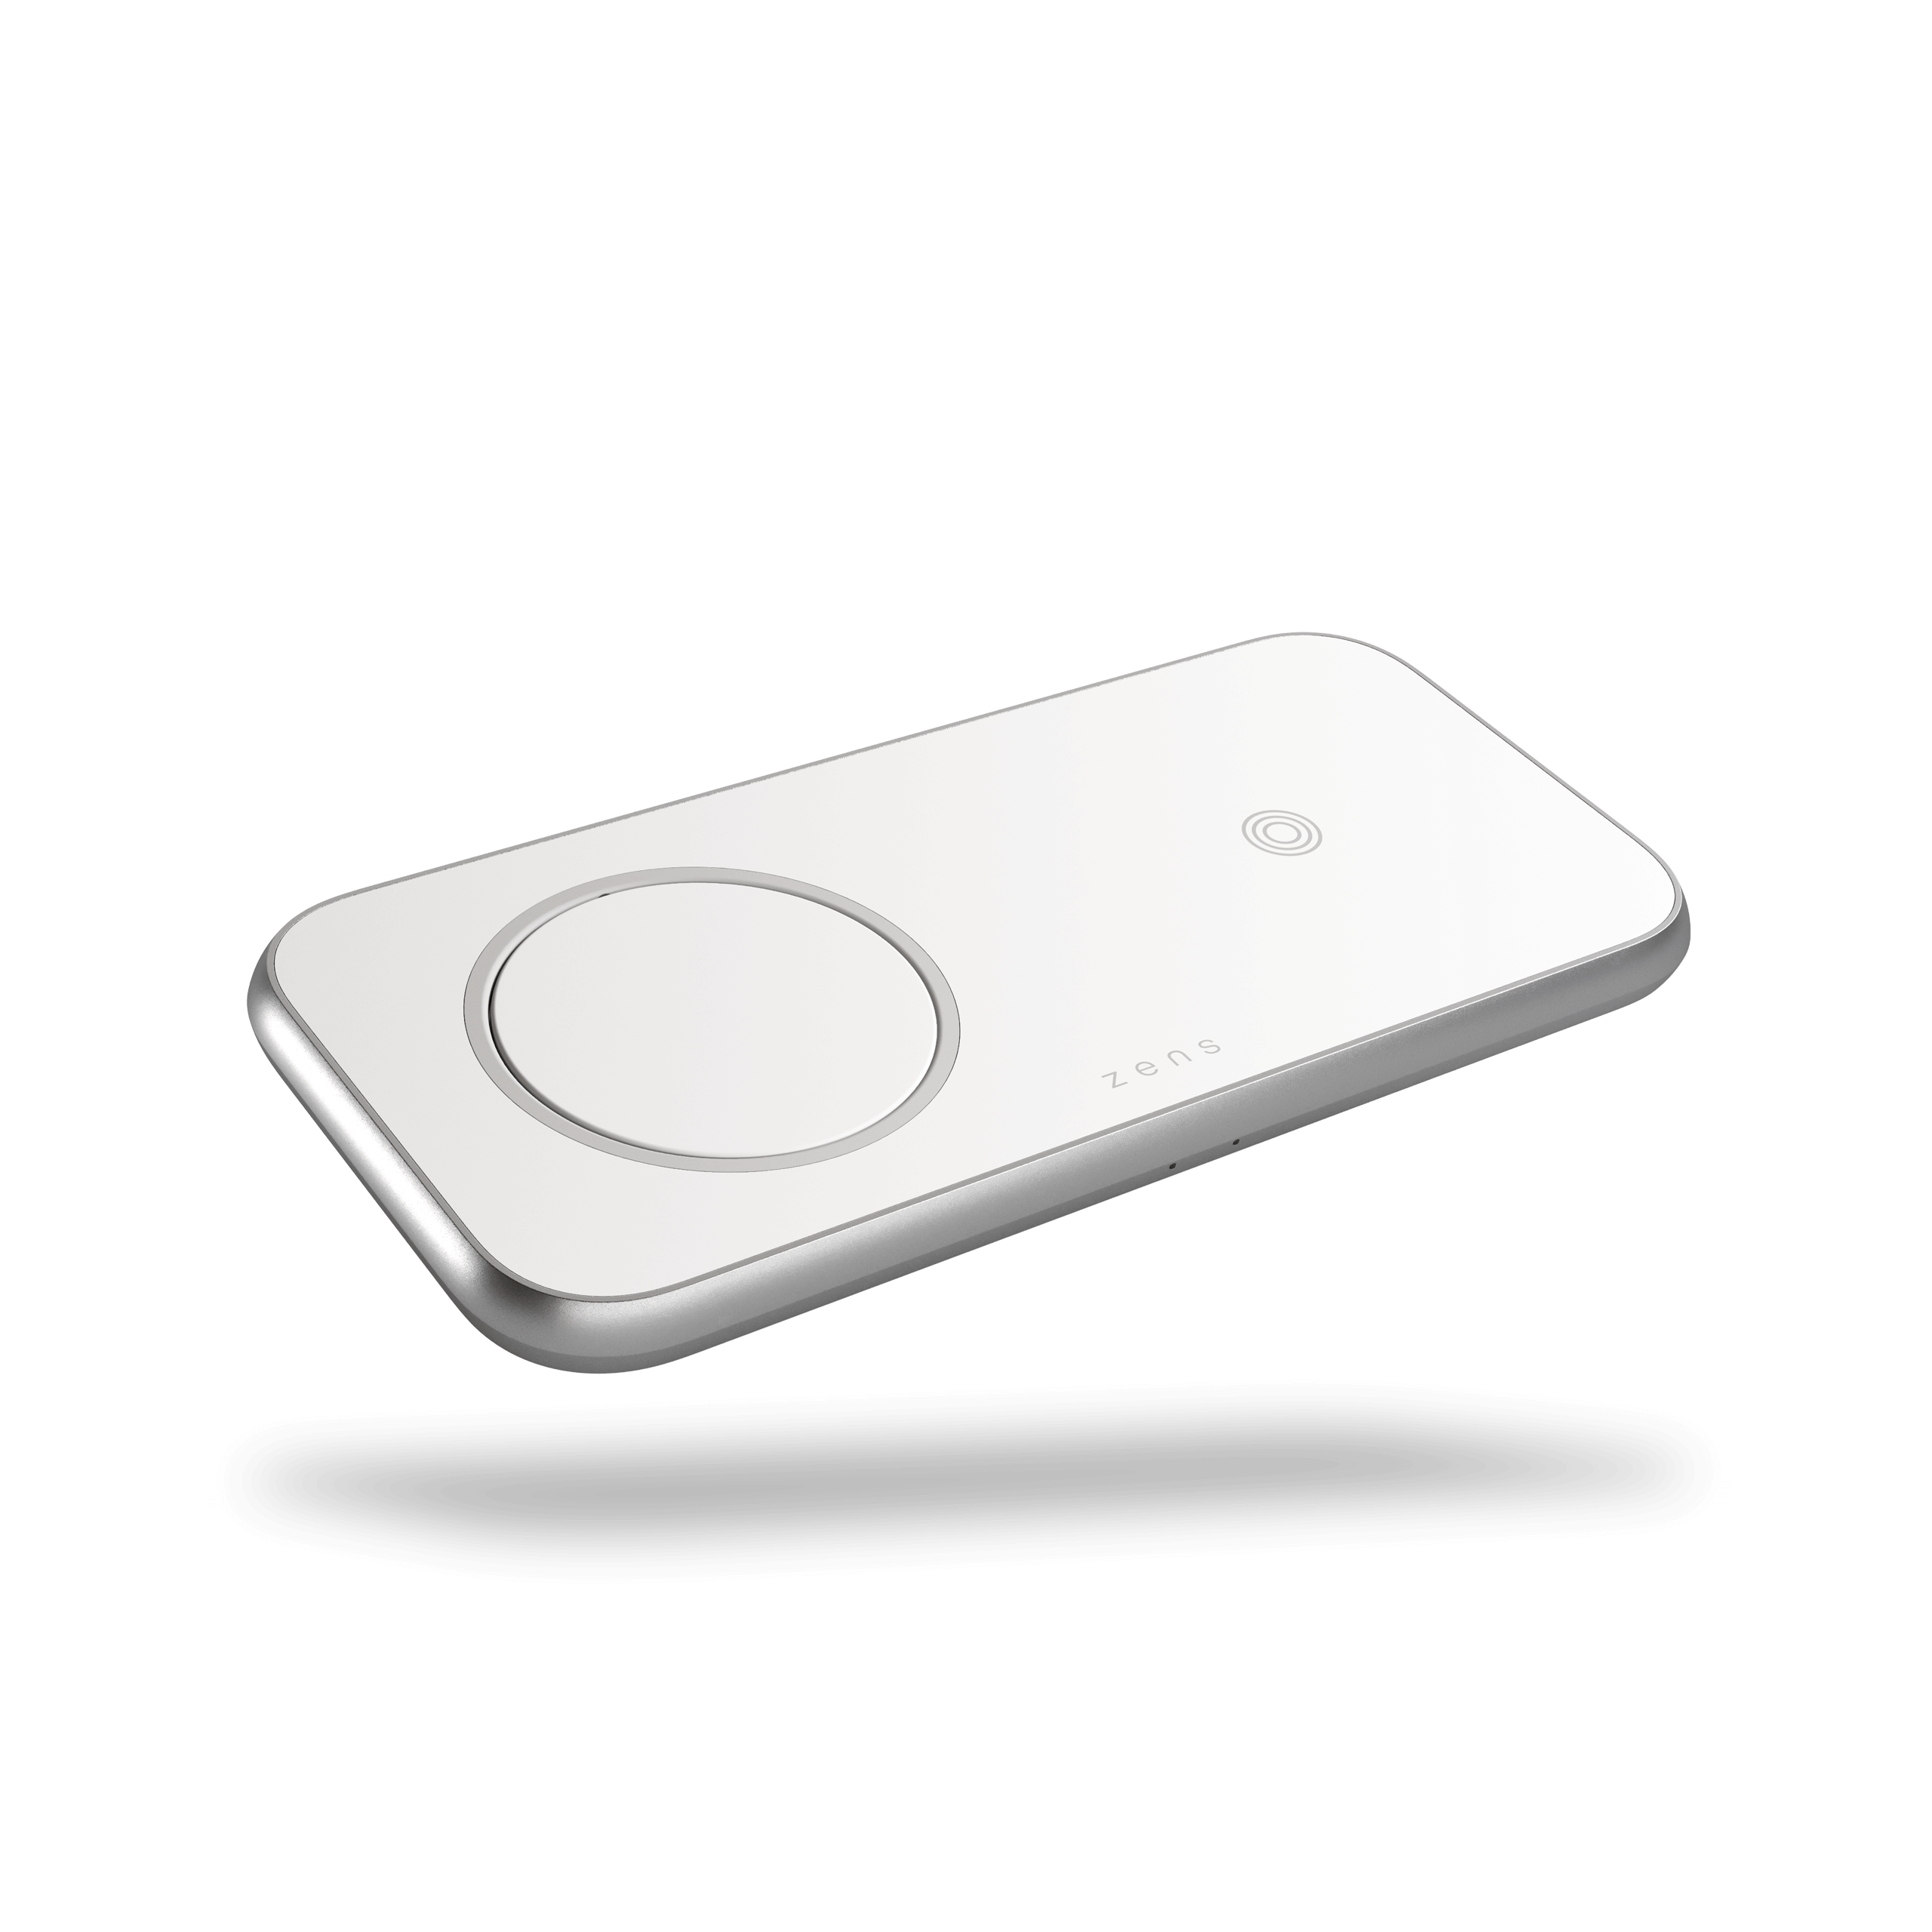 ZEDC16W - Zens 3 in 1 MagSafe Wireless Charger with Magsafe